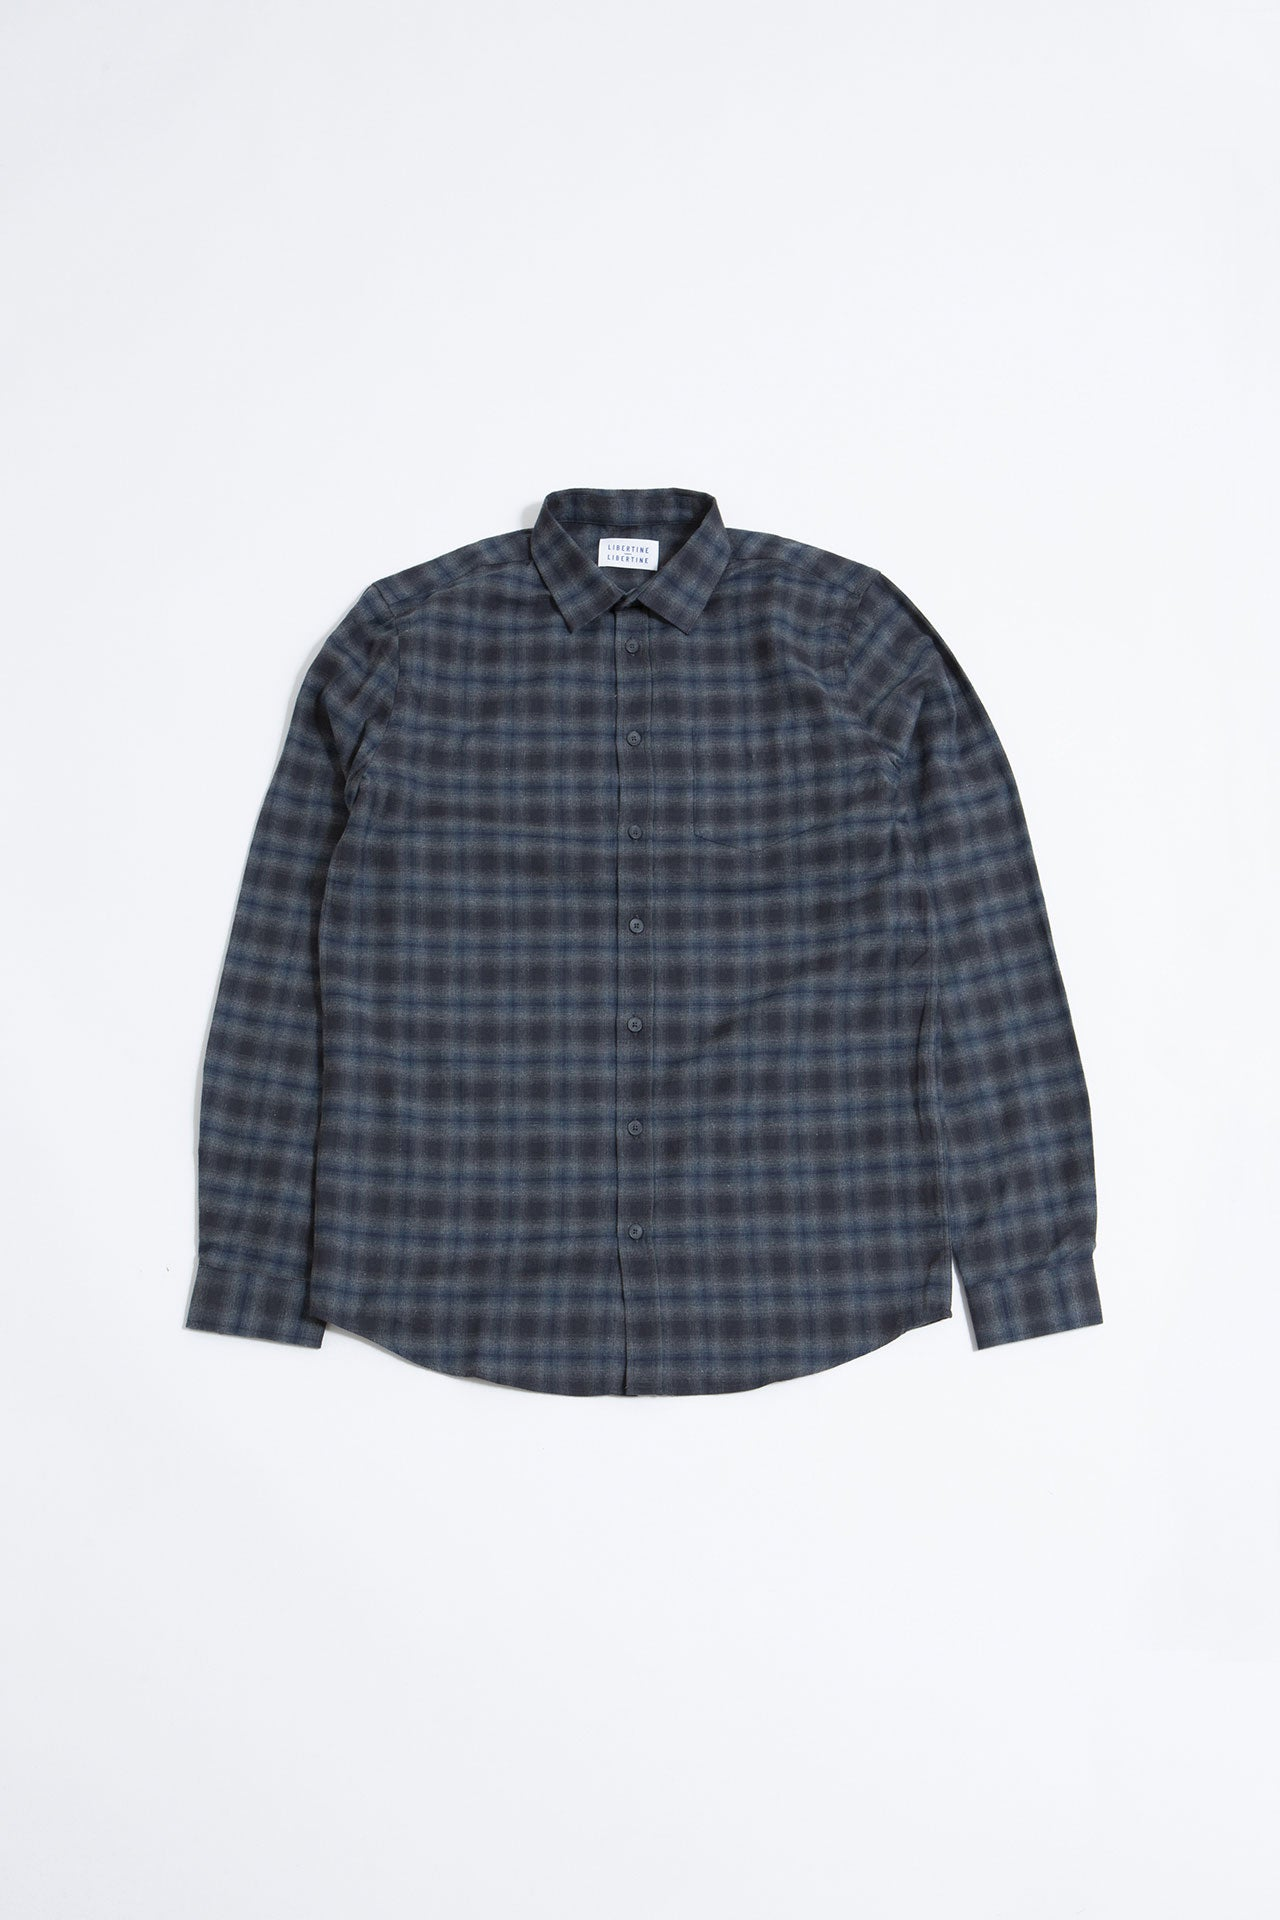 Lynch Shirt flannel check